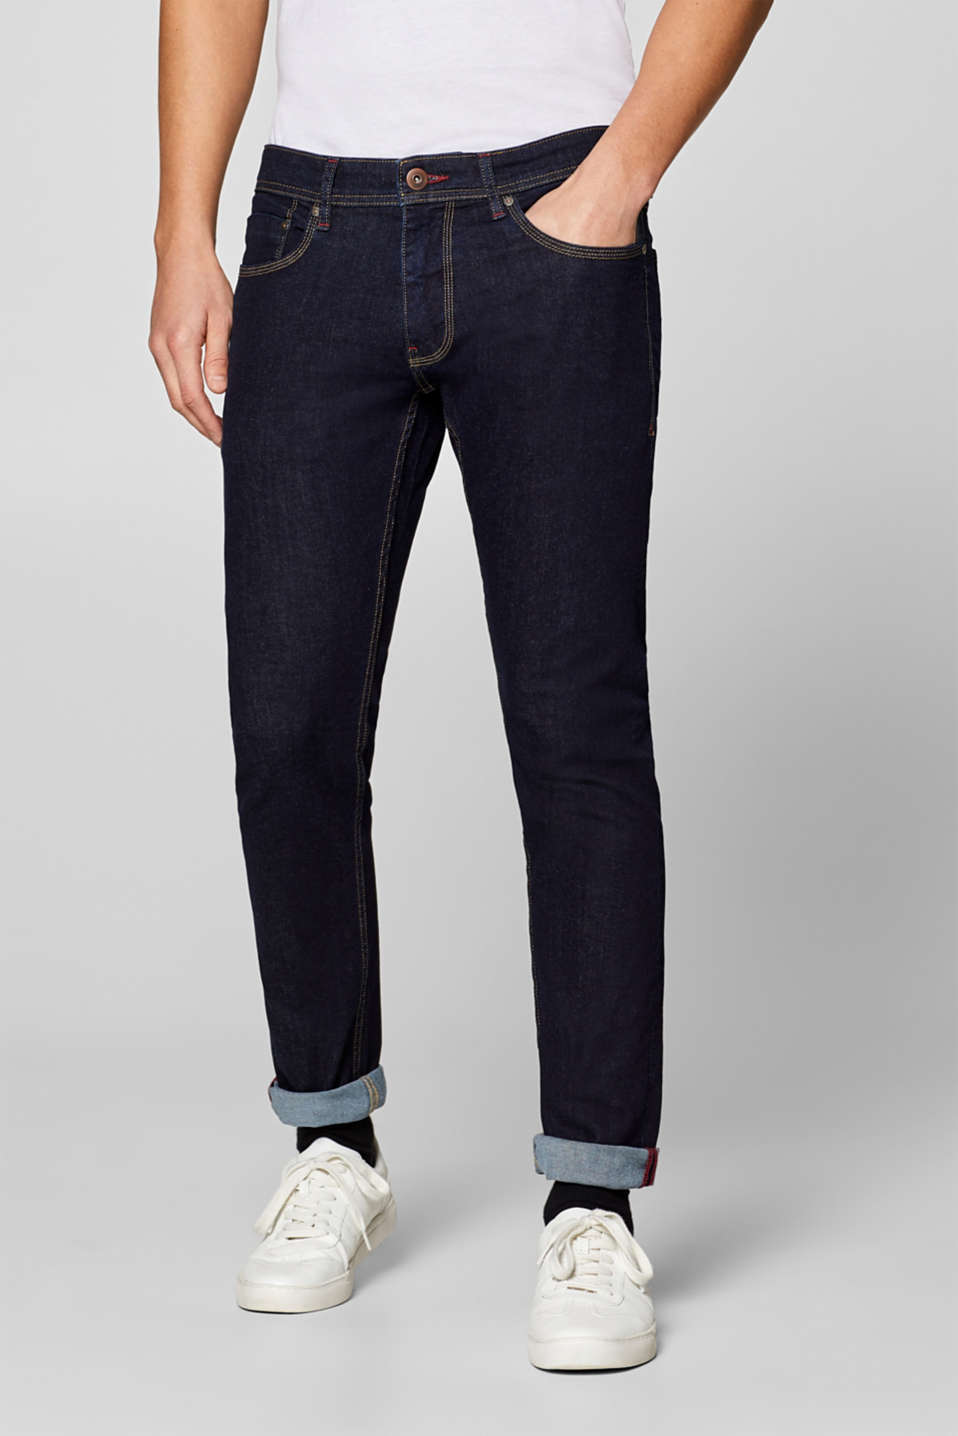 edc - Stretch jeans with contrasting stitching